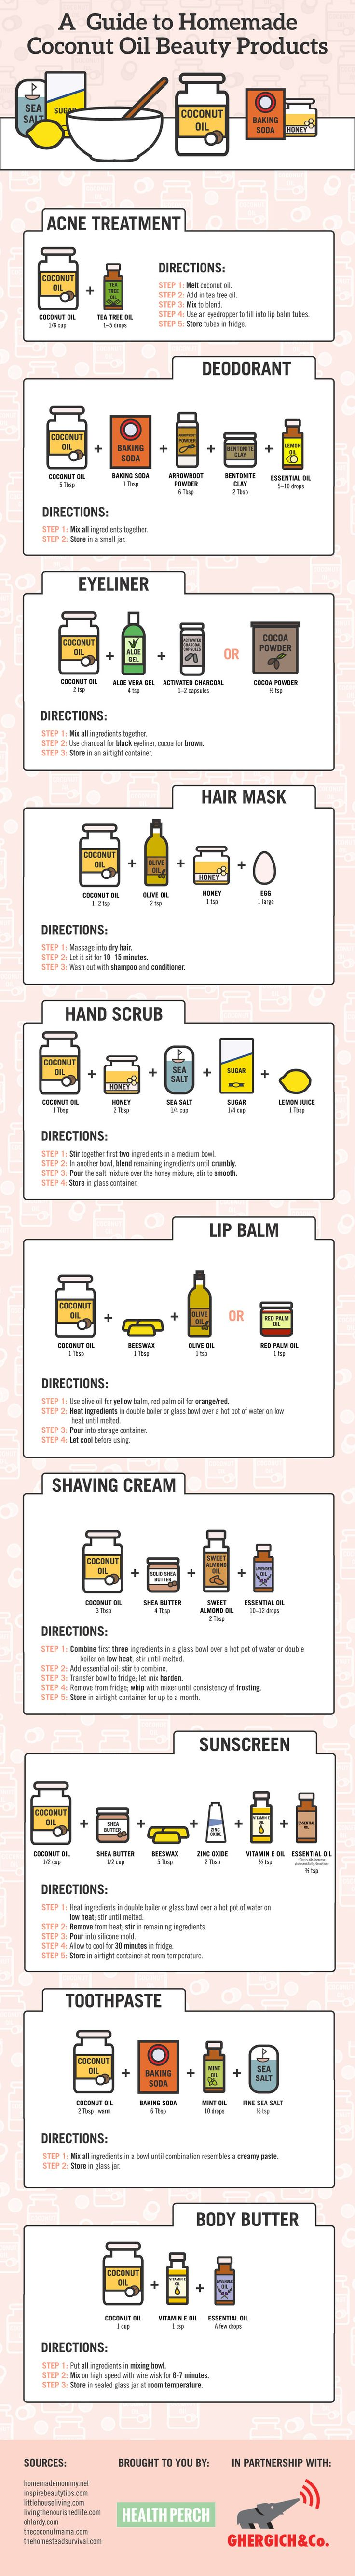 A guide to DIY coconut oil beauty products - we love coconut oil!! We also love skin care recipes that use food-grade ingredients straight from the pantry!